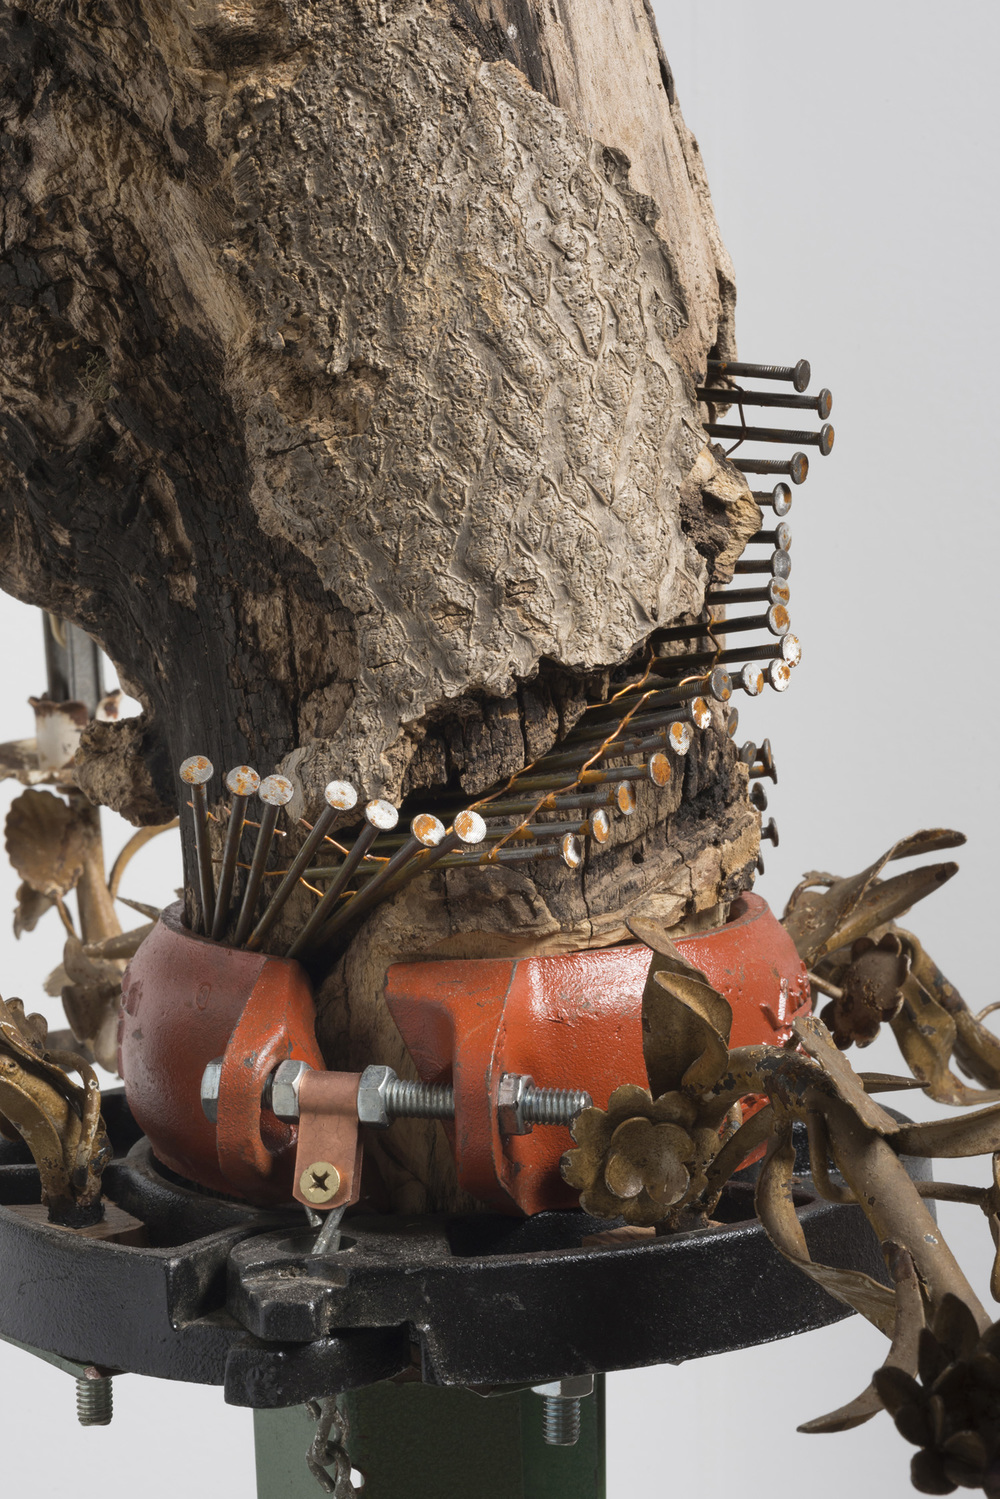 Lorna Williams-spoils-2013-chandelier fixtures, table legs, concrete, chain, plumbing hardware, Spanish moss, ukulele, root system, nails, wasp hive, acrylic, bullet casings-45x20x29-detail-4(2).jpg